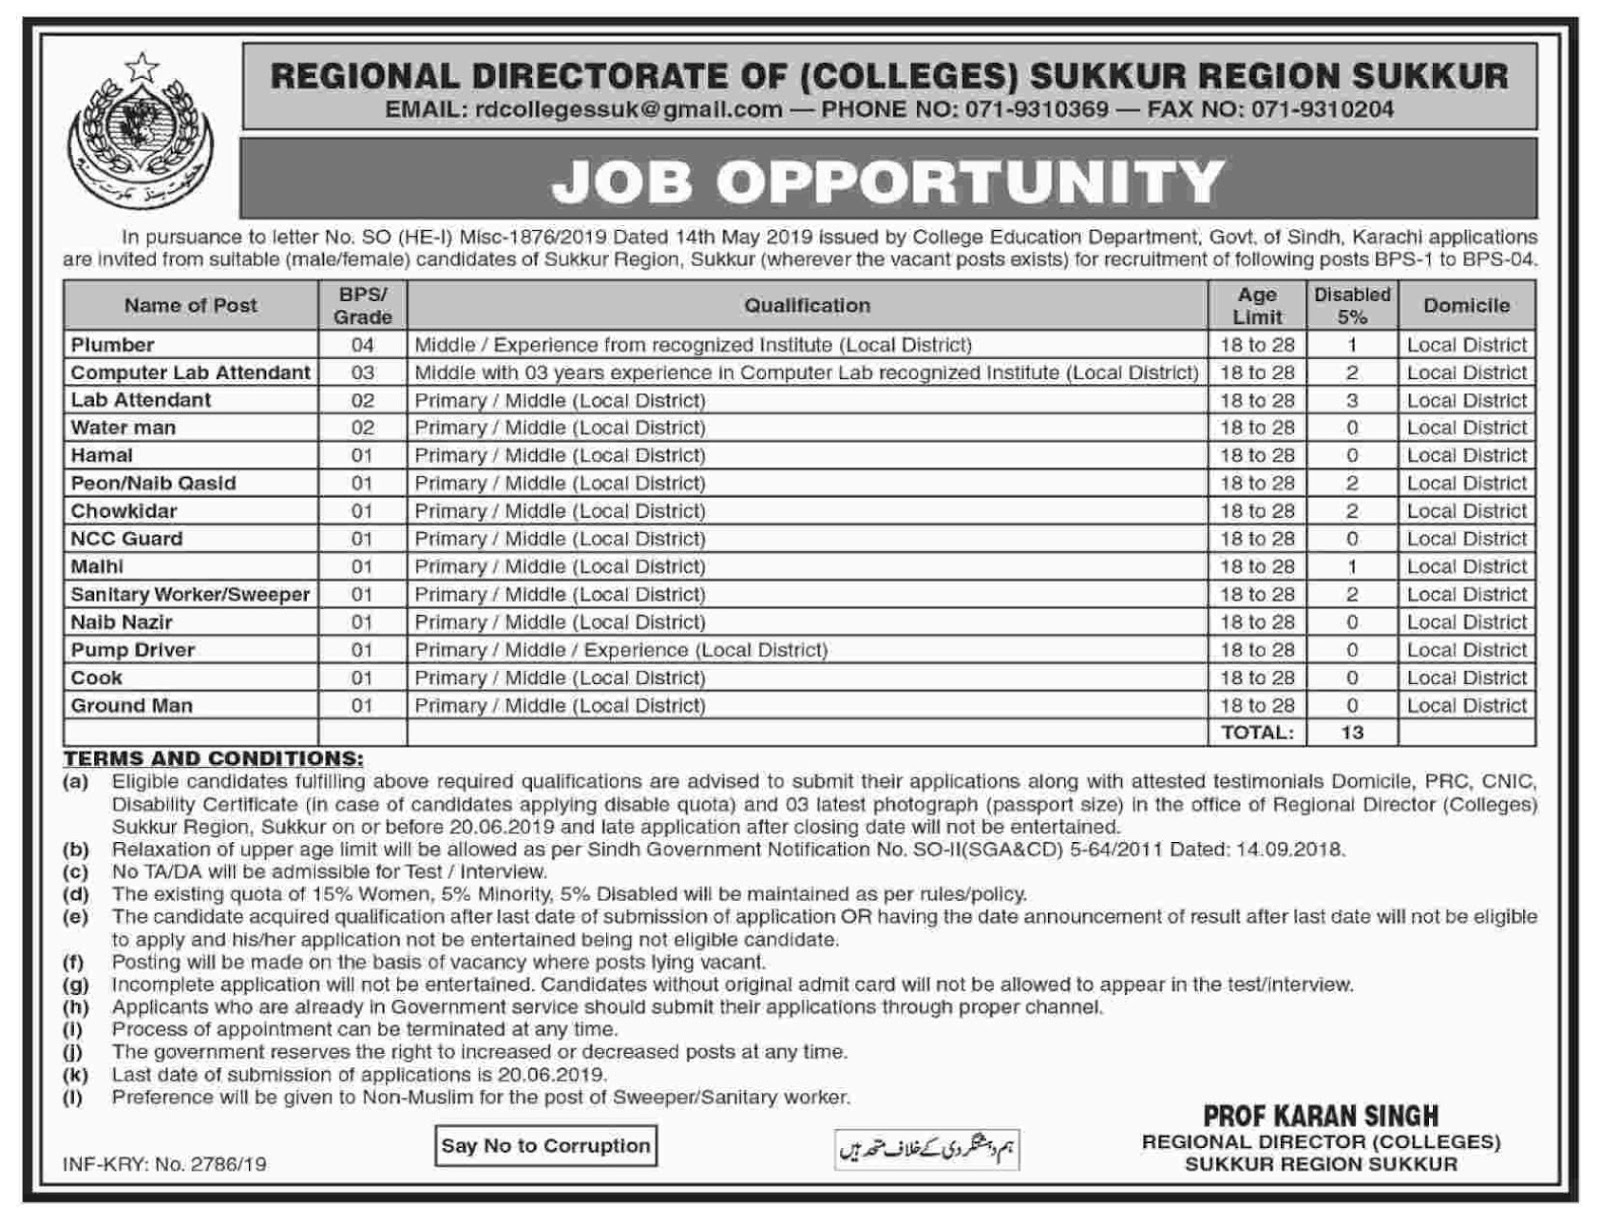 Regional Director Colleges, Sukkur Sindh Jobs 2019 - Sindh Jobs